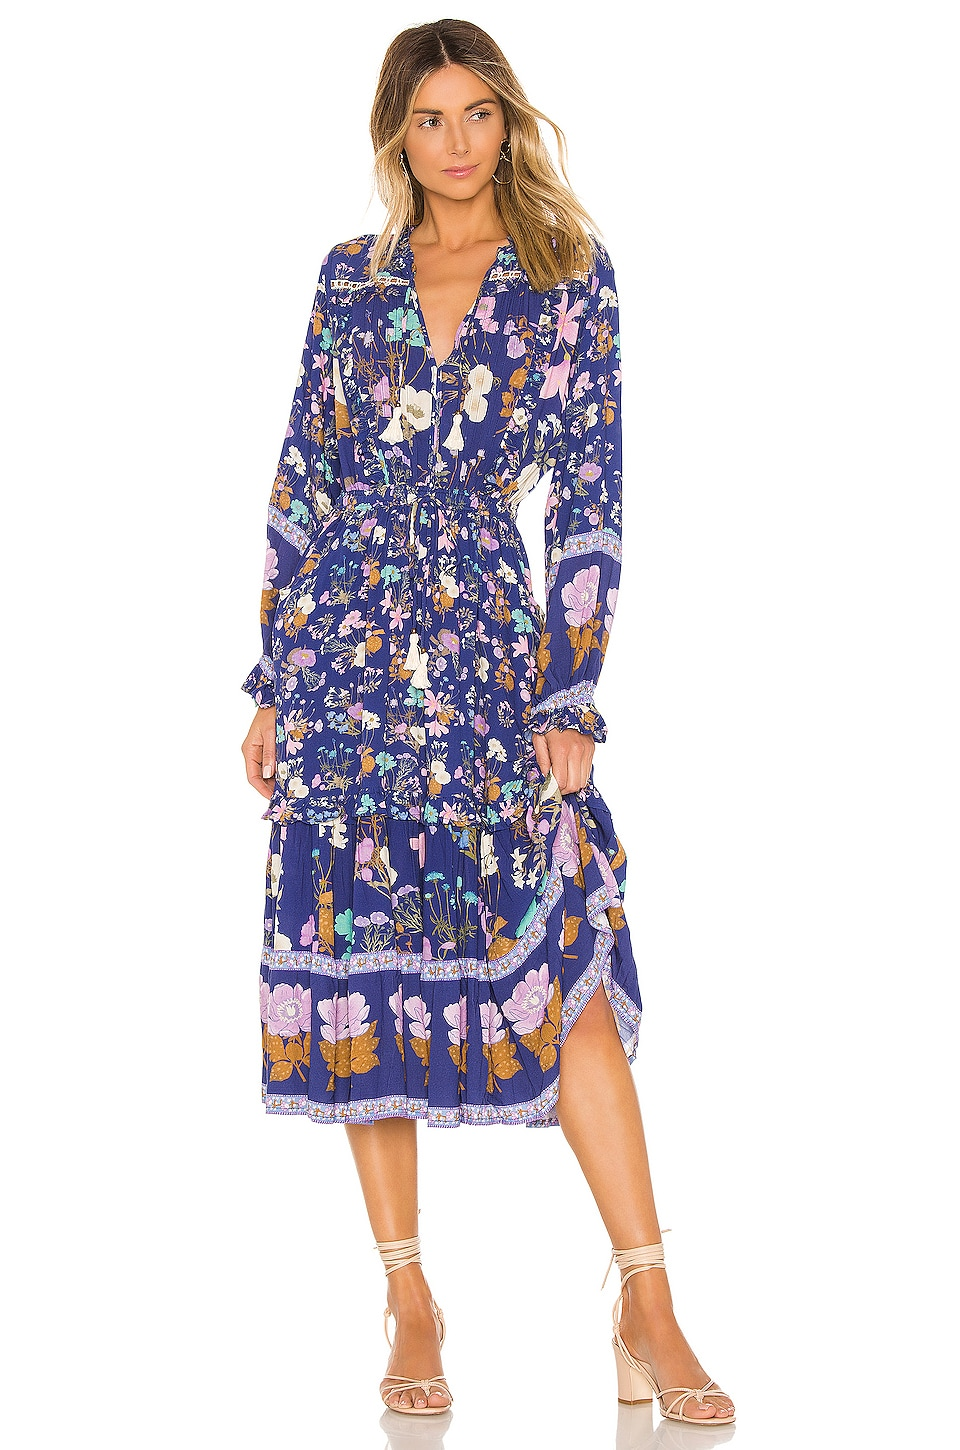 Spell & The Gypsy Collective Wild Bloom Midi Dress in Navy